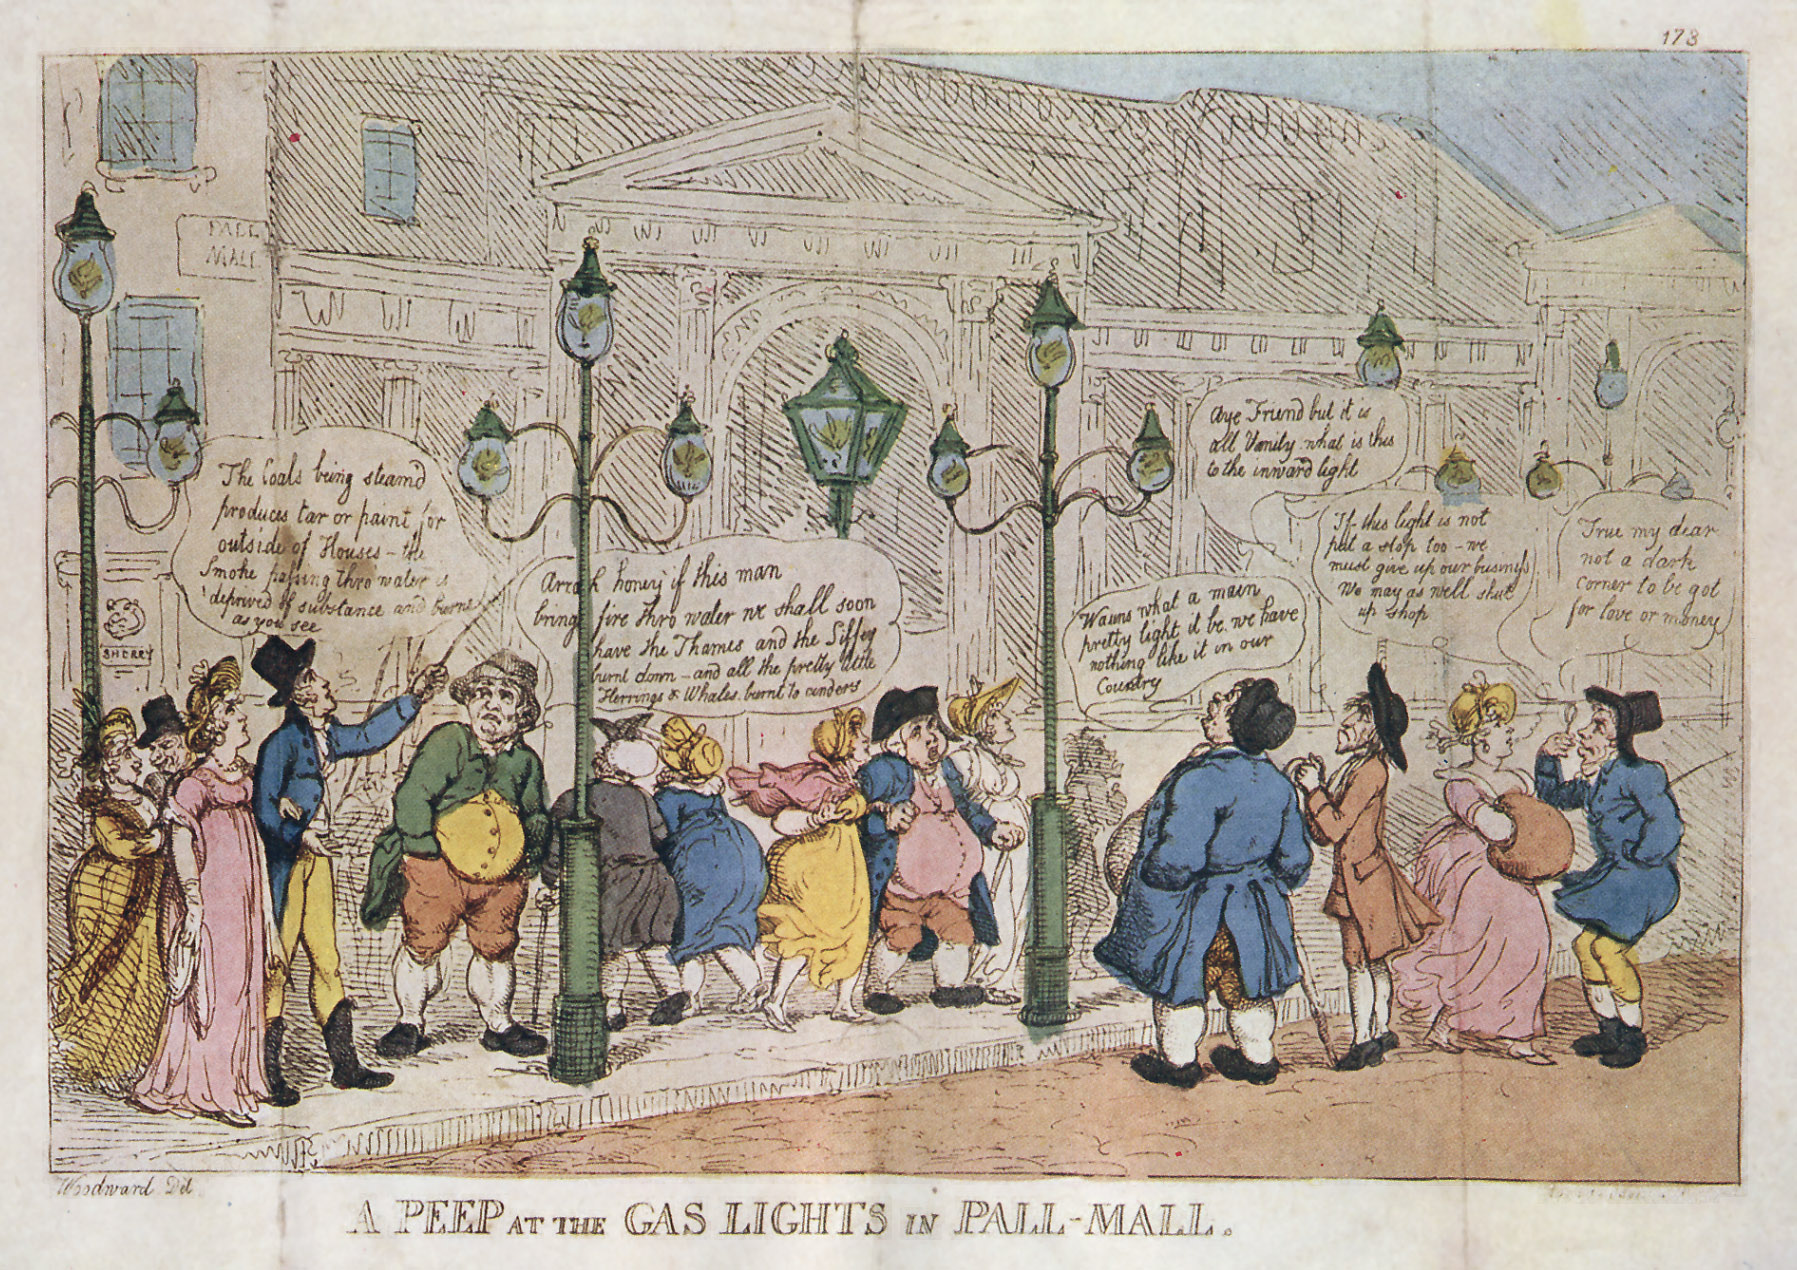 Gas Licht Water : File a peep at the gas lights in pall mall rowlandson g